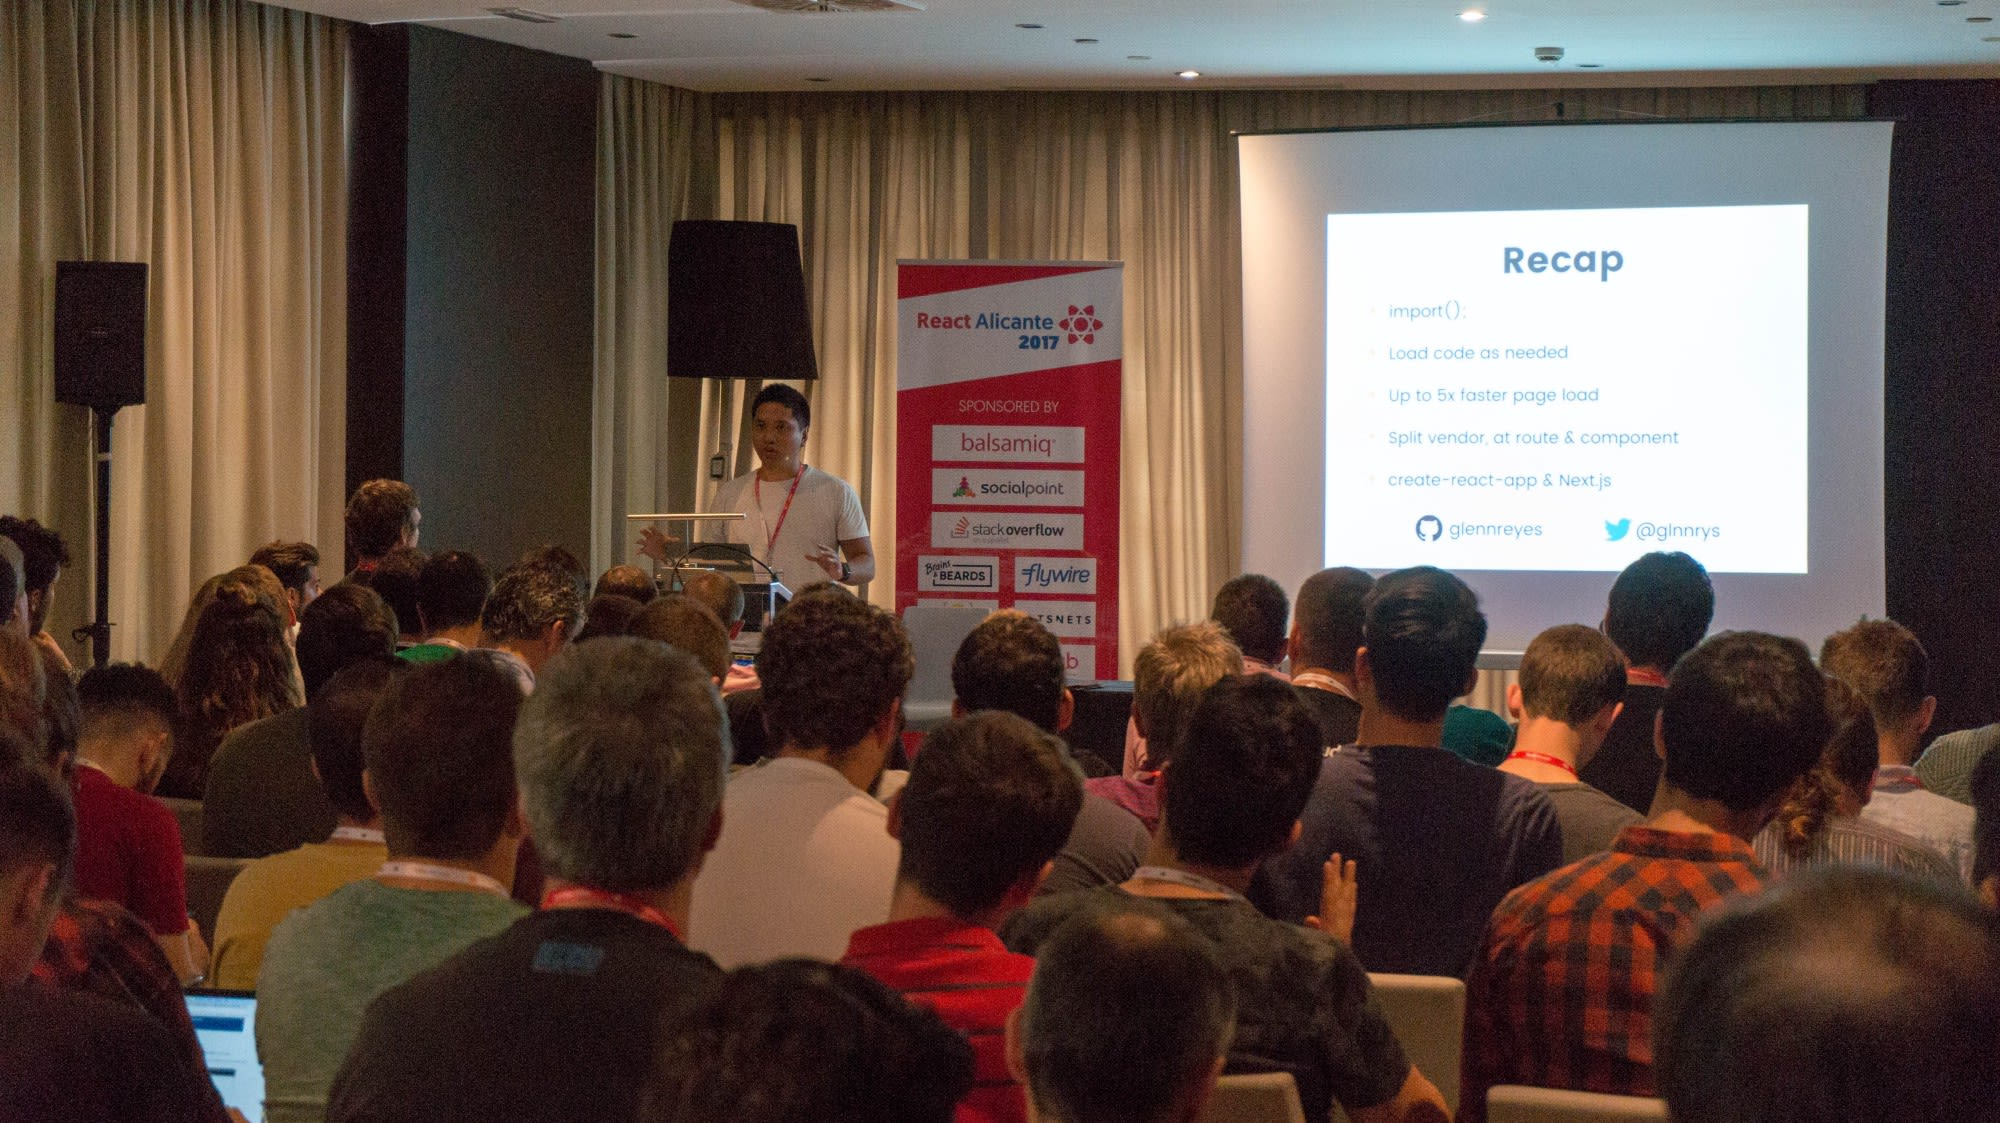 Glenn Reyes speaking at React Alicante